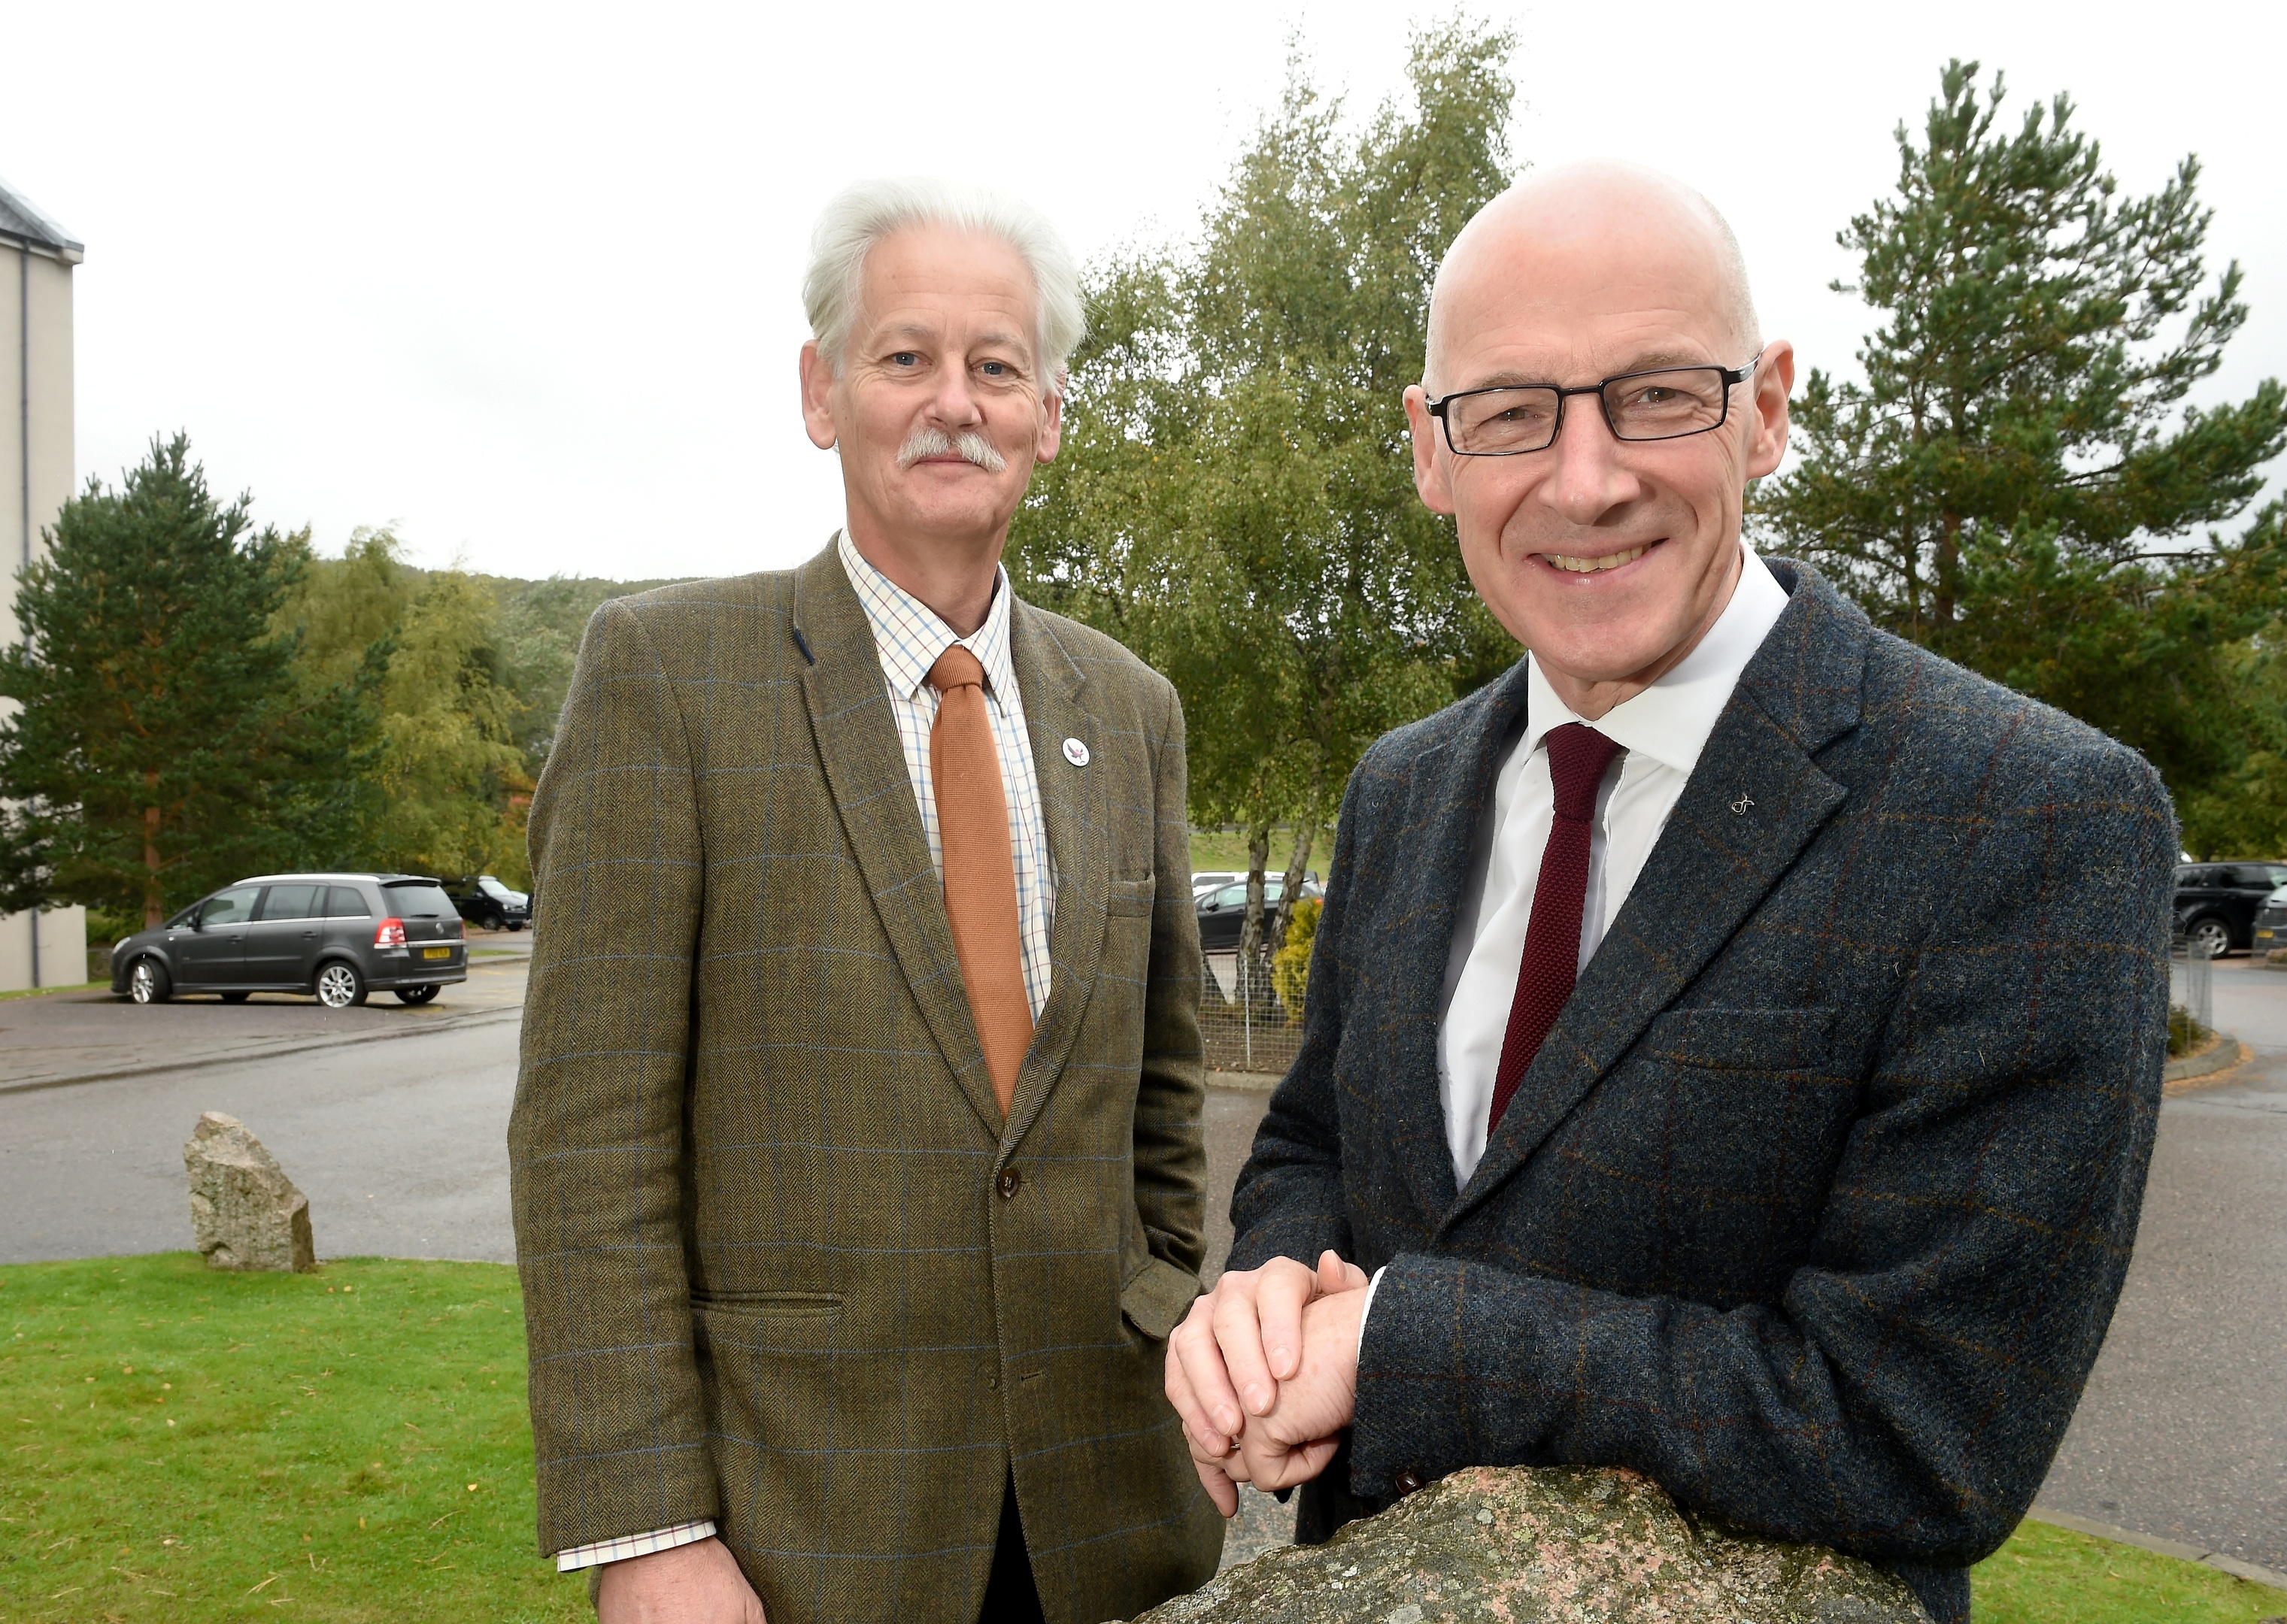 Deputy First Minister John Swinney with Peter Argyle, Convener of the Cairngorms National Park Authority outside the conference at Aviemore. Picture by Sandy McCook